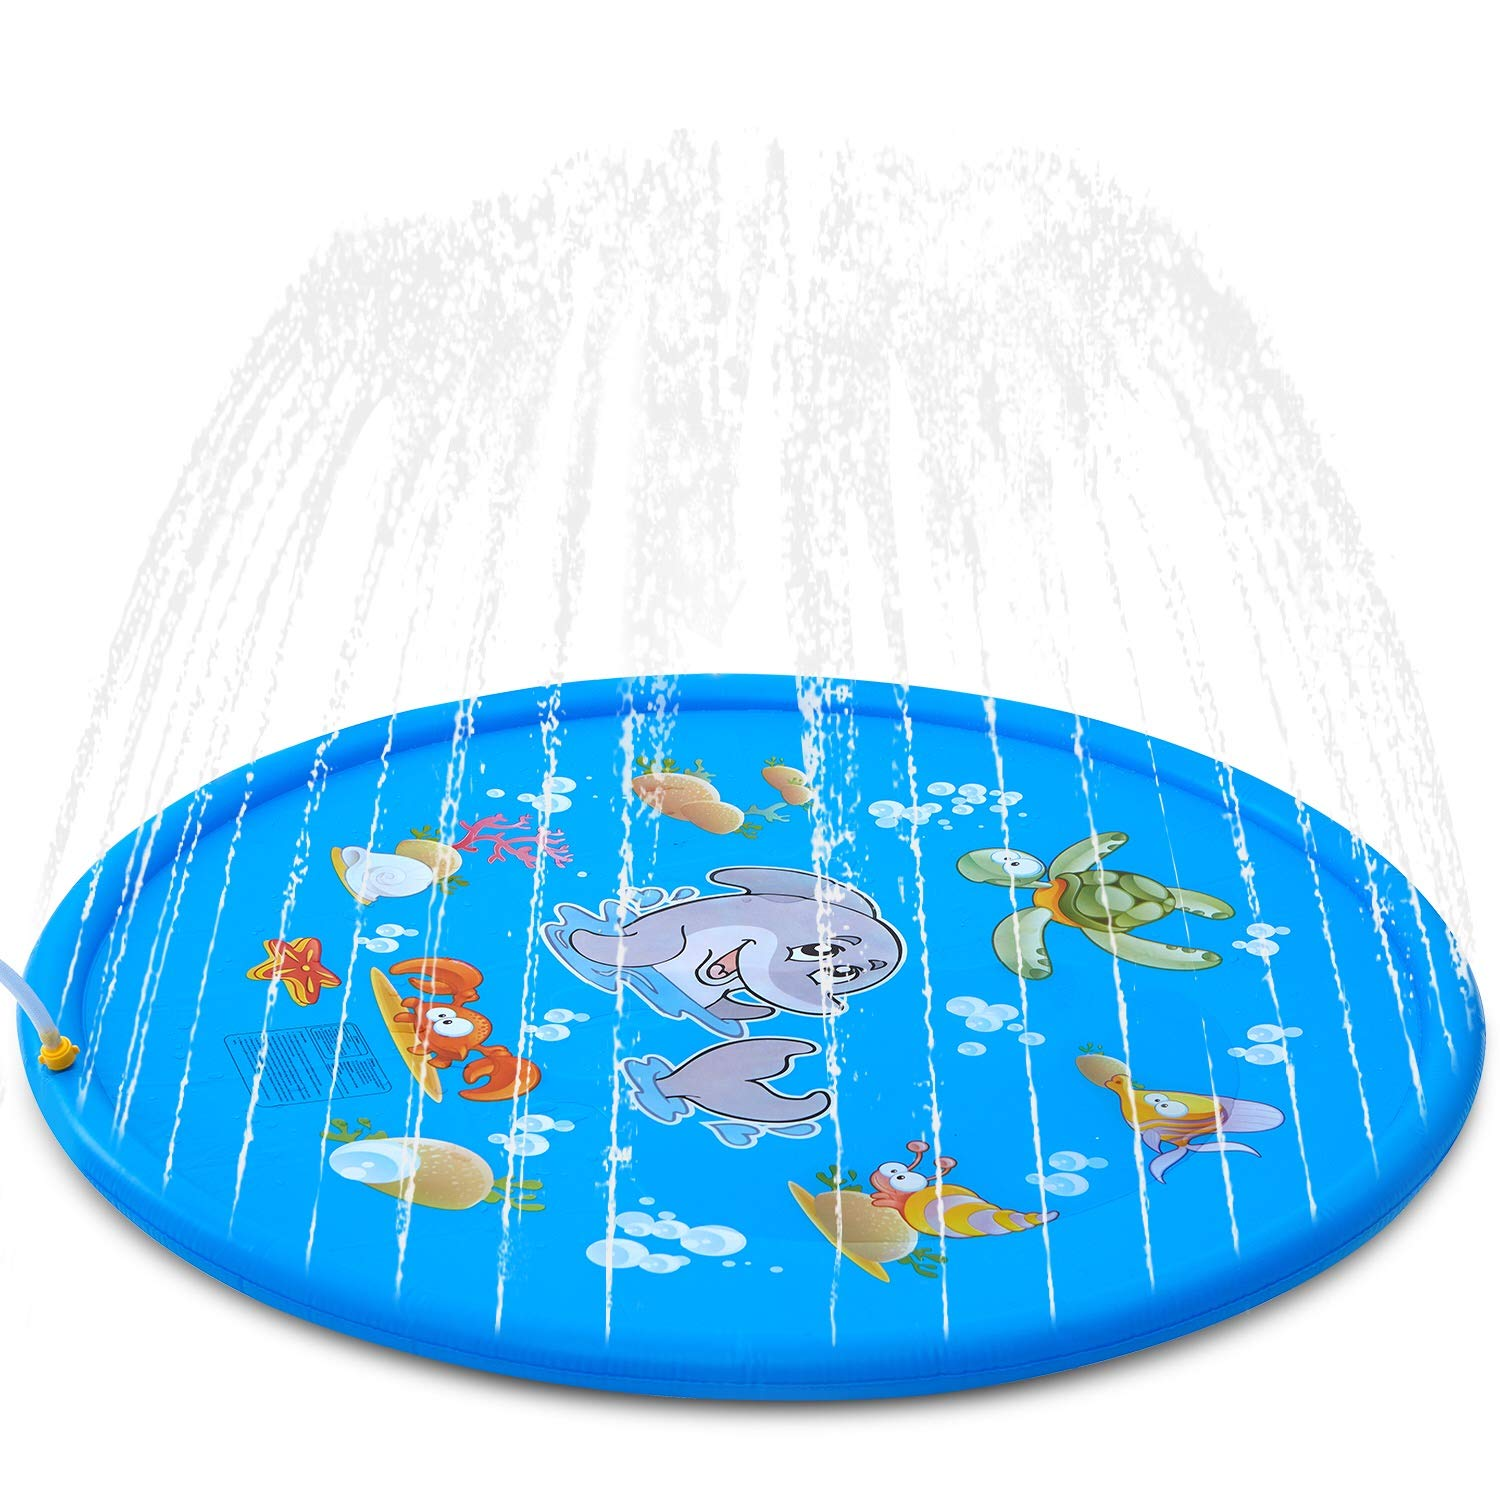 Splash Pad, ALWOA 68''Kids Sprinkler Pad for 1 2 3 4 5 Year Old Toodler Children Boys Girls, Inflatable Shark Water Toys Fun for Outdoor, Upgraded Sprinkle and Splash Play Mat with Wading Pool